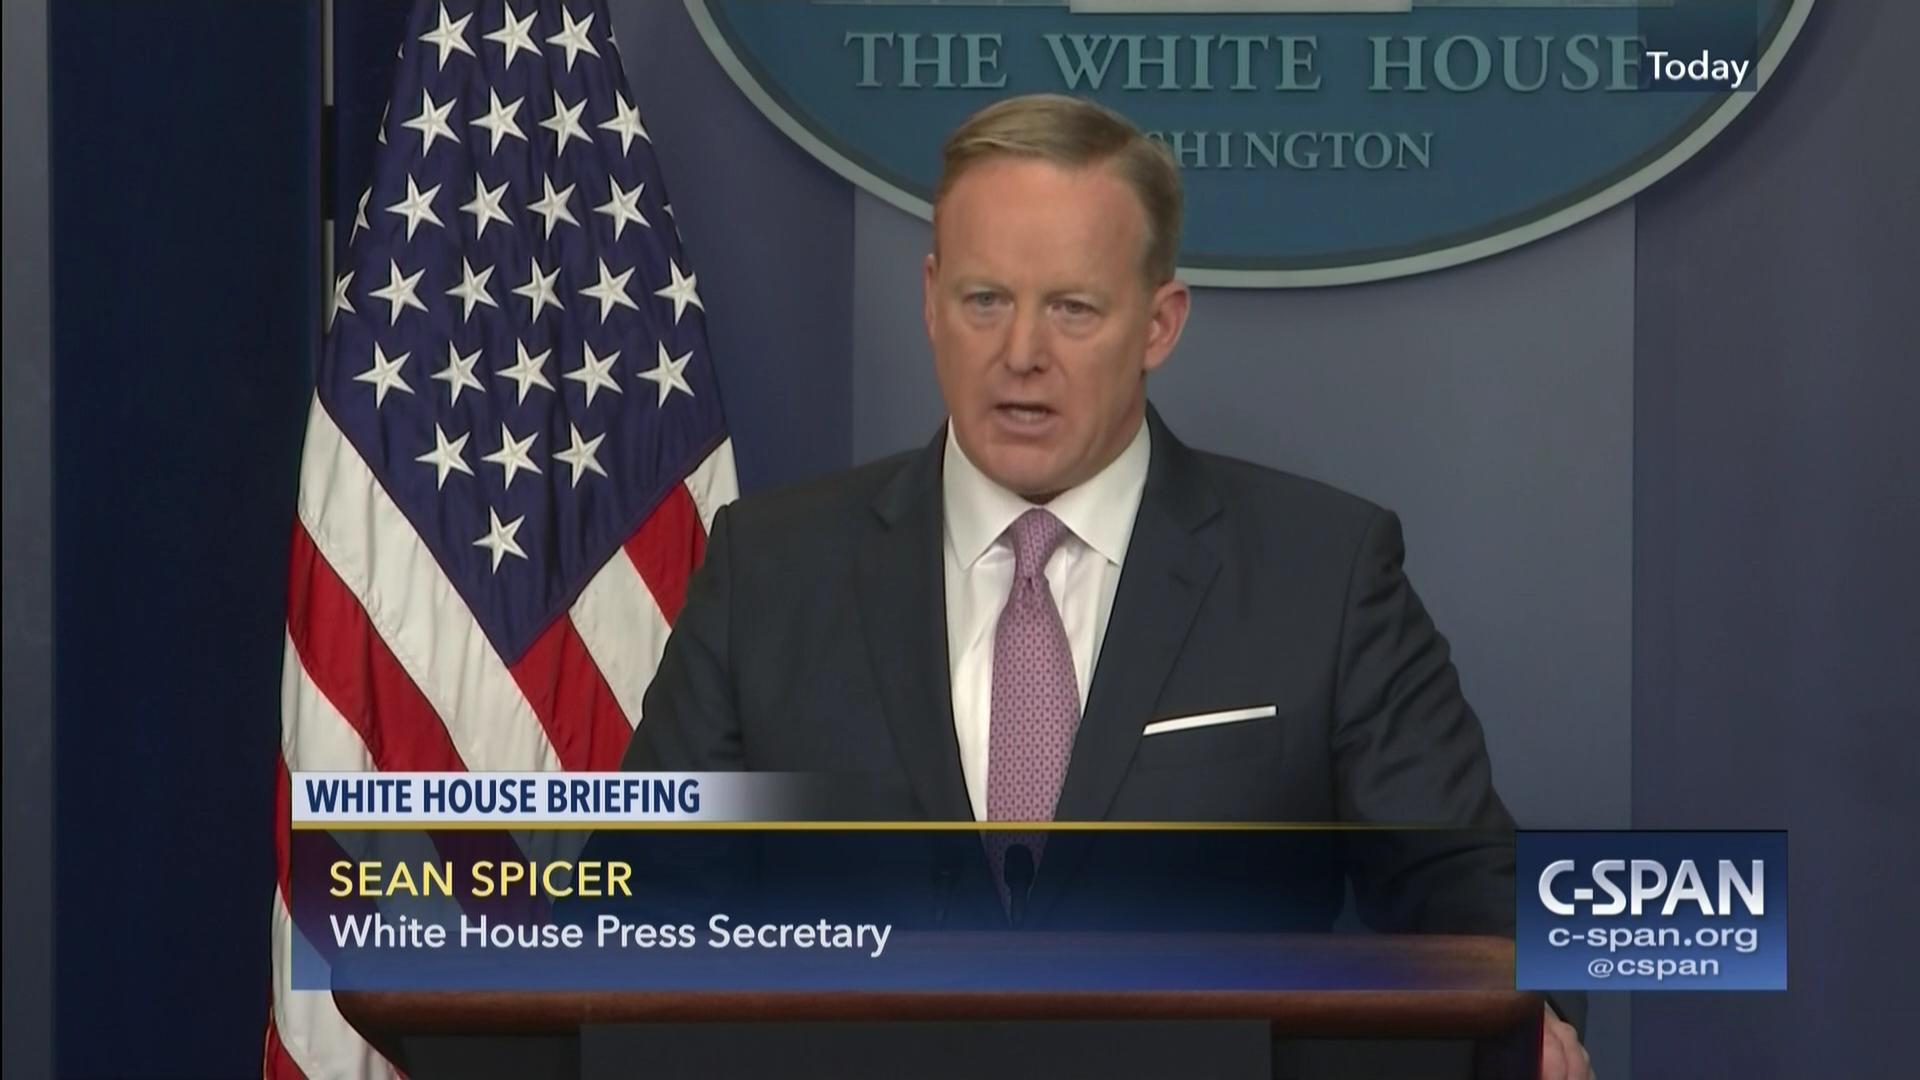 sean spicer holds first daily briefing, jan 23 2017 | c-span